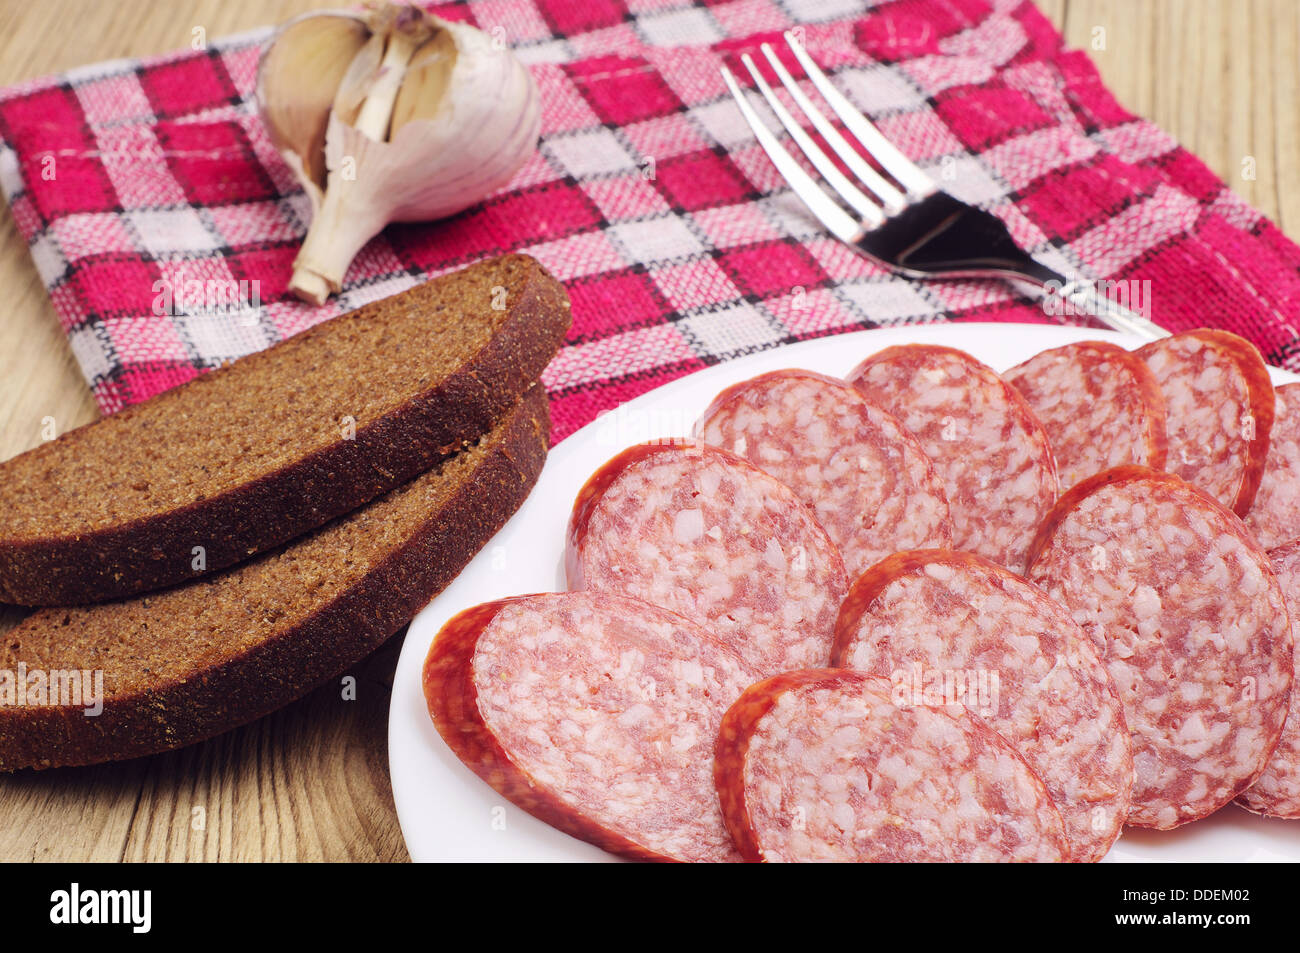 Smoked sausage sliced and bread on wooden table Stock Photo